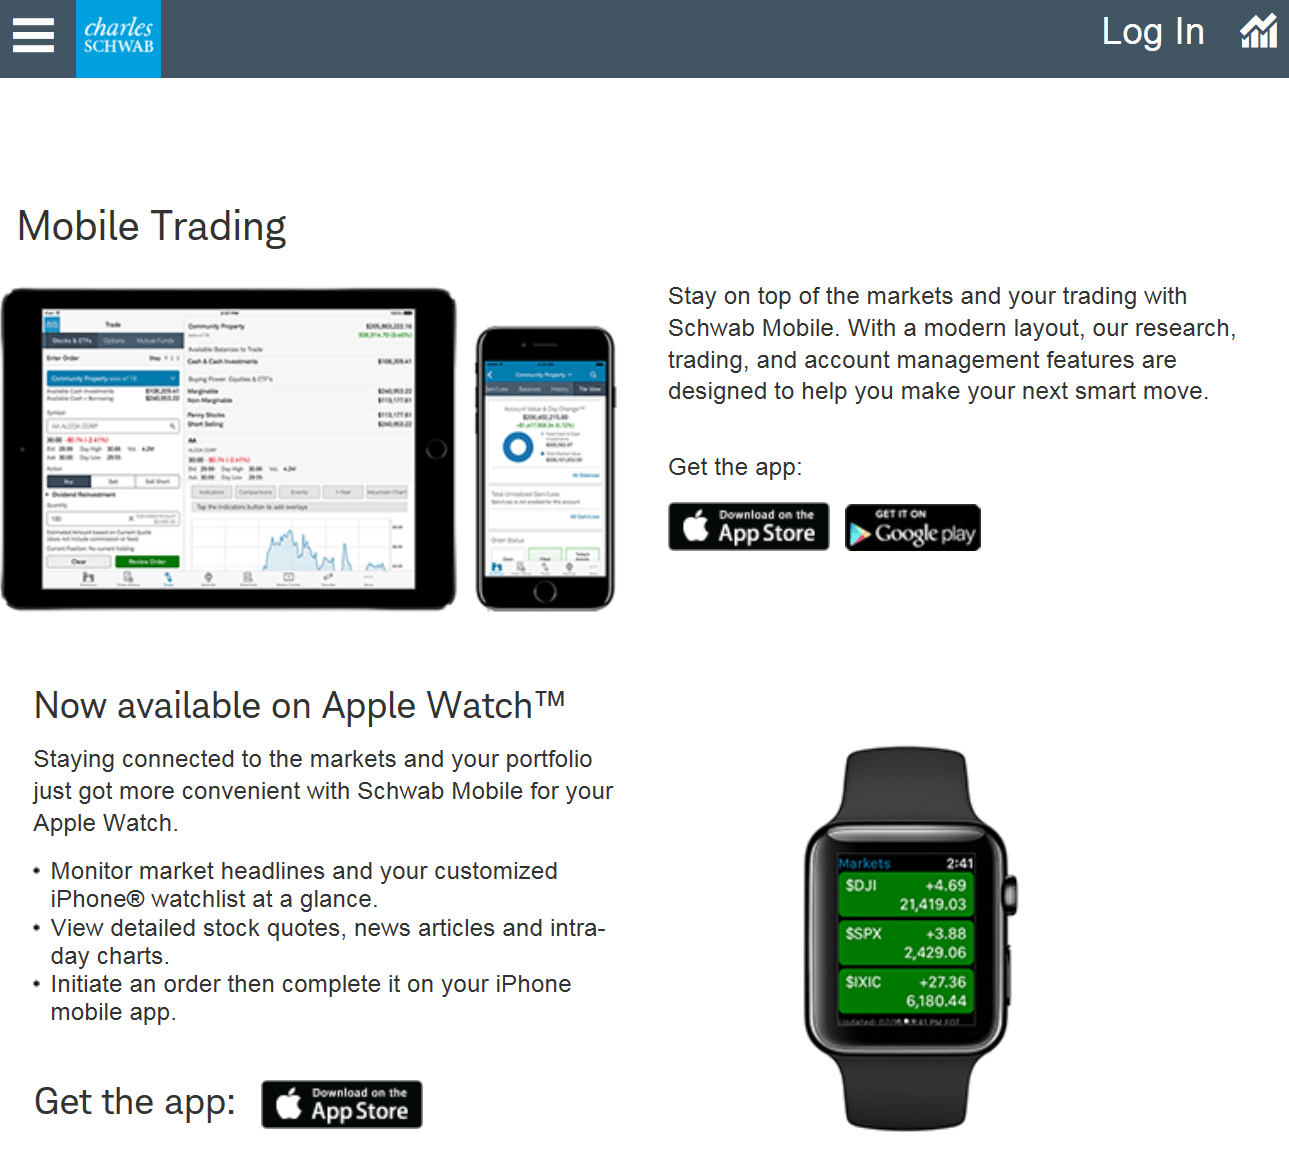 Mobile Trading with Charles Schwab